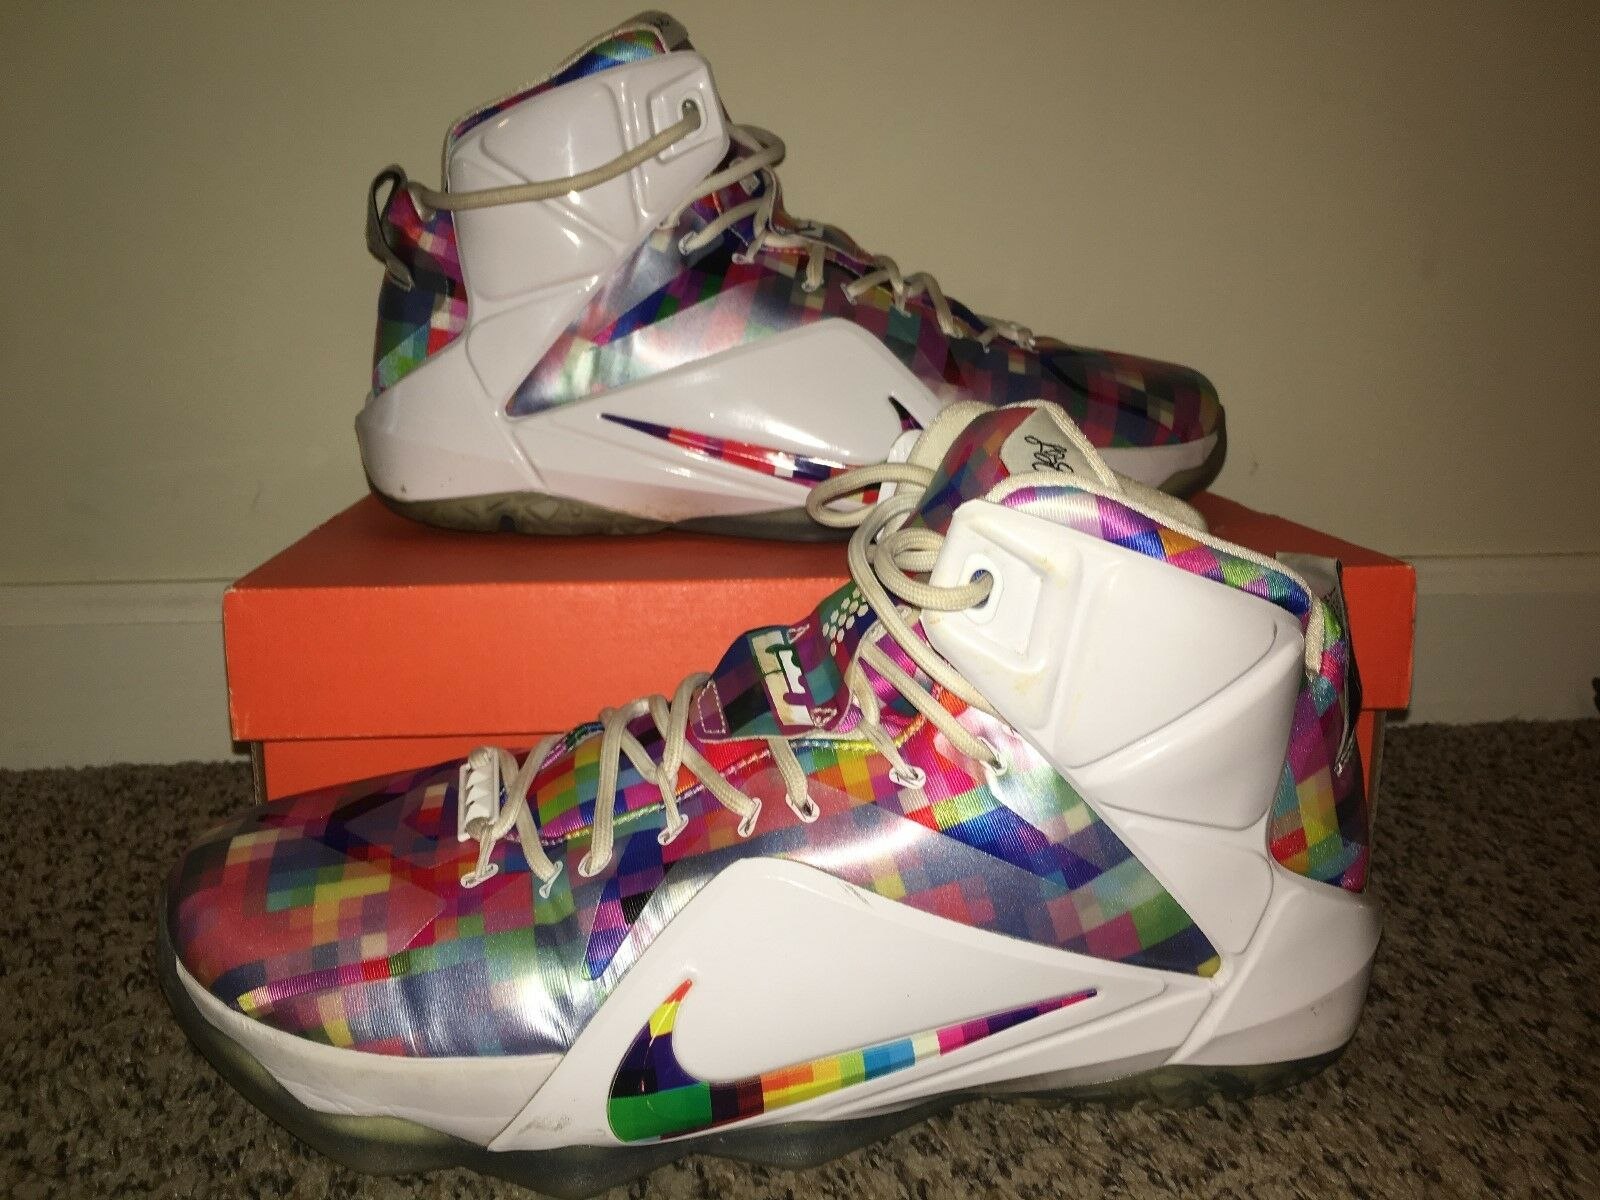 Men's Nike Lebron XII, Multicolor, size 10.5, practically brand-new